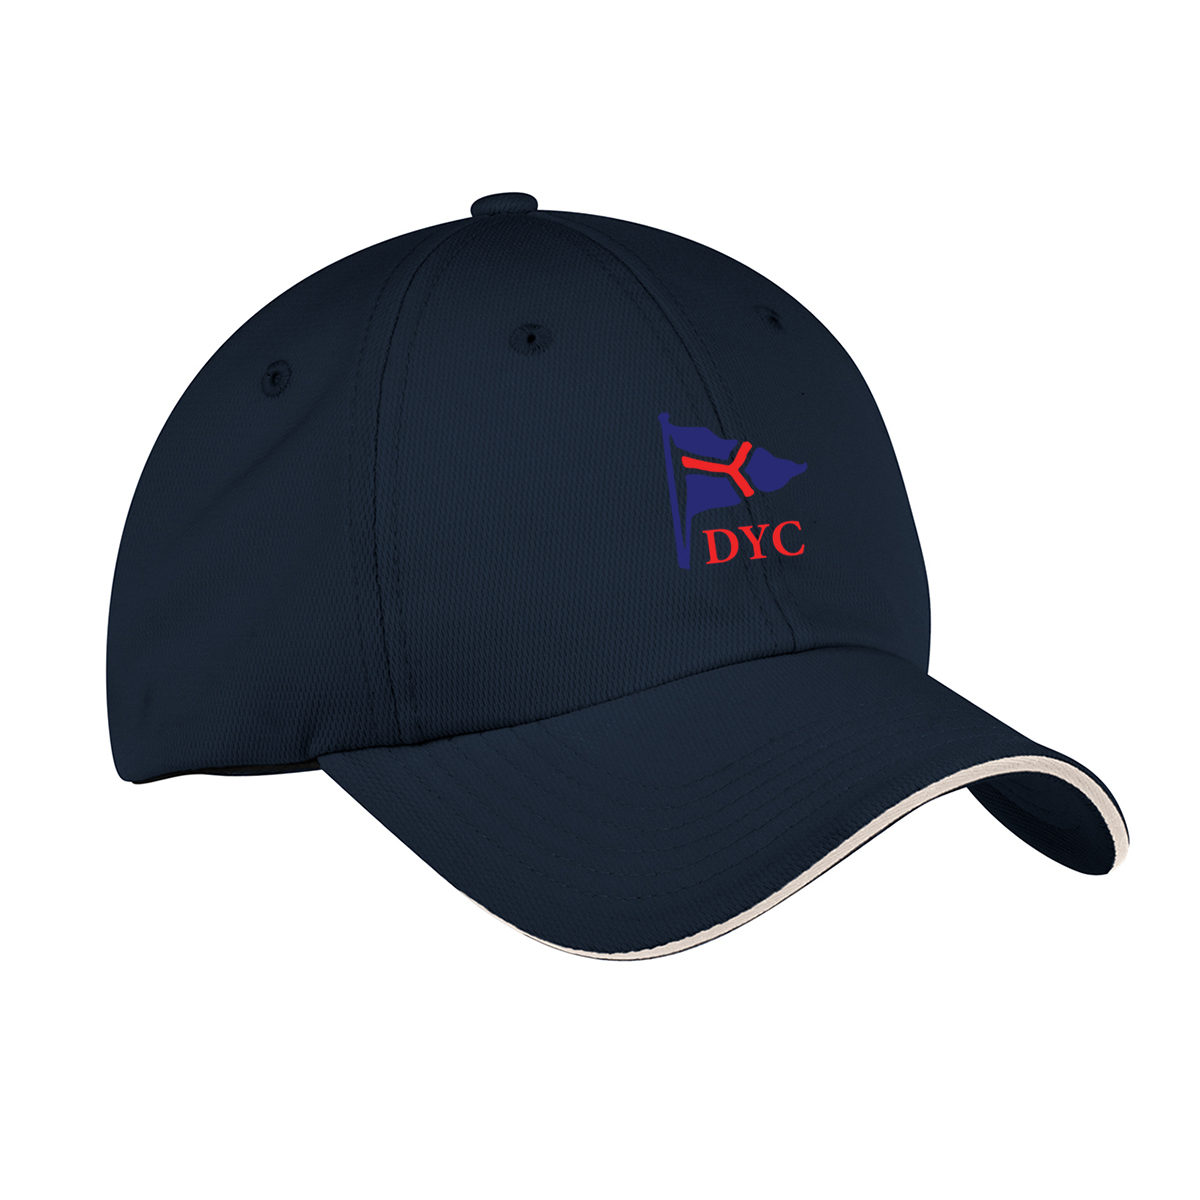 DEVON YACHT CLUB DRY ZONE CAP